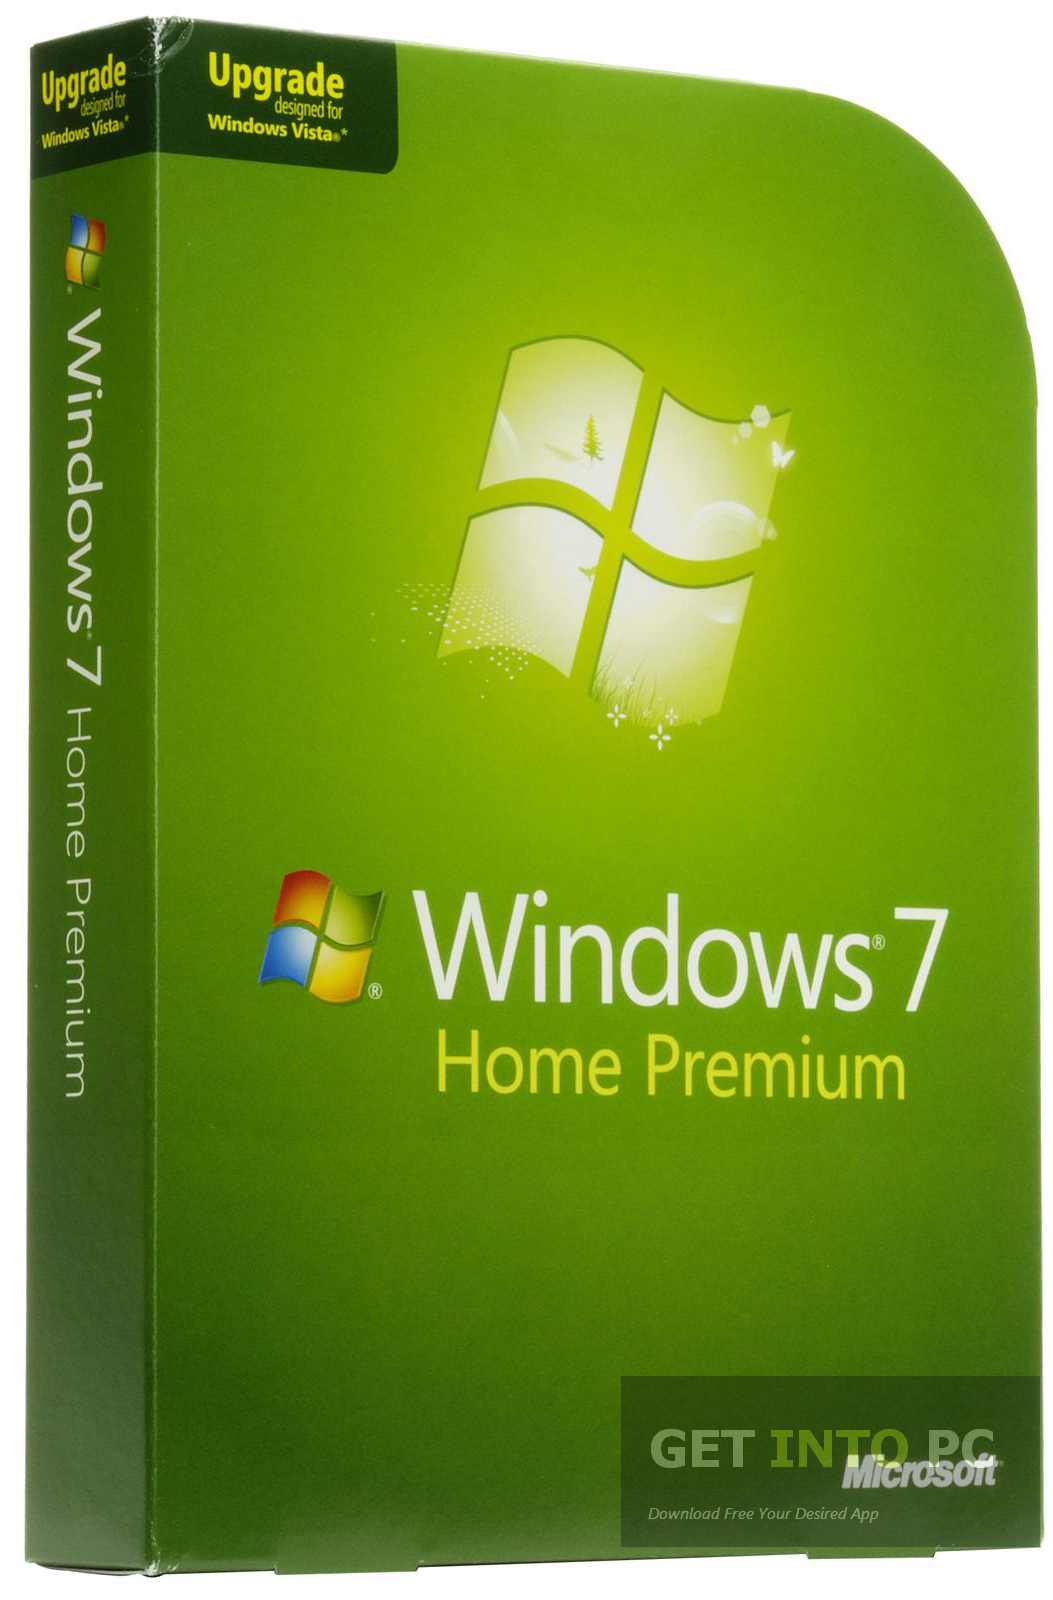 Windows 7 Home Premium Free Download ISO 32 Bit 64 Bit